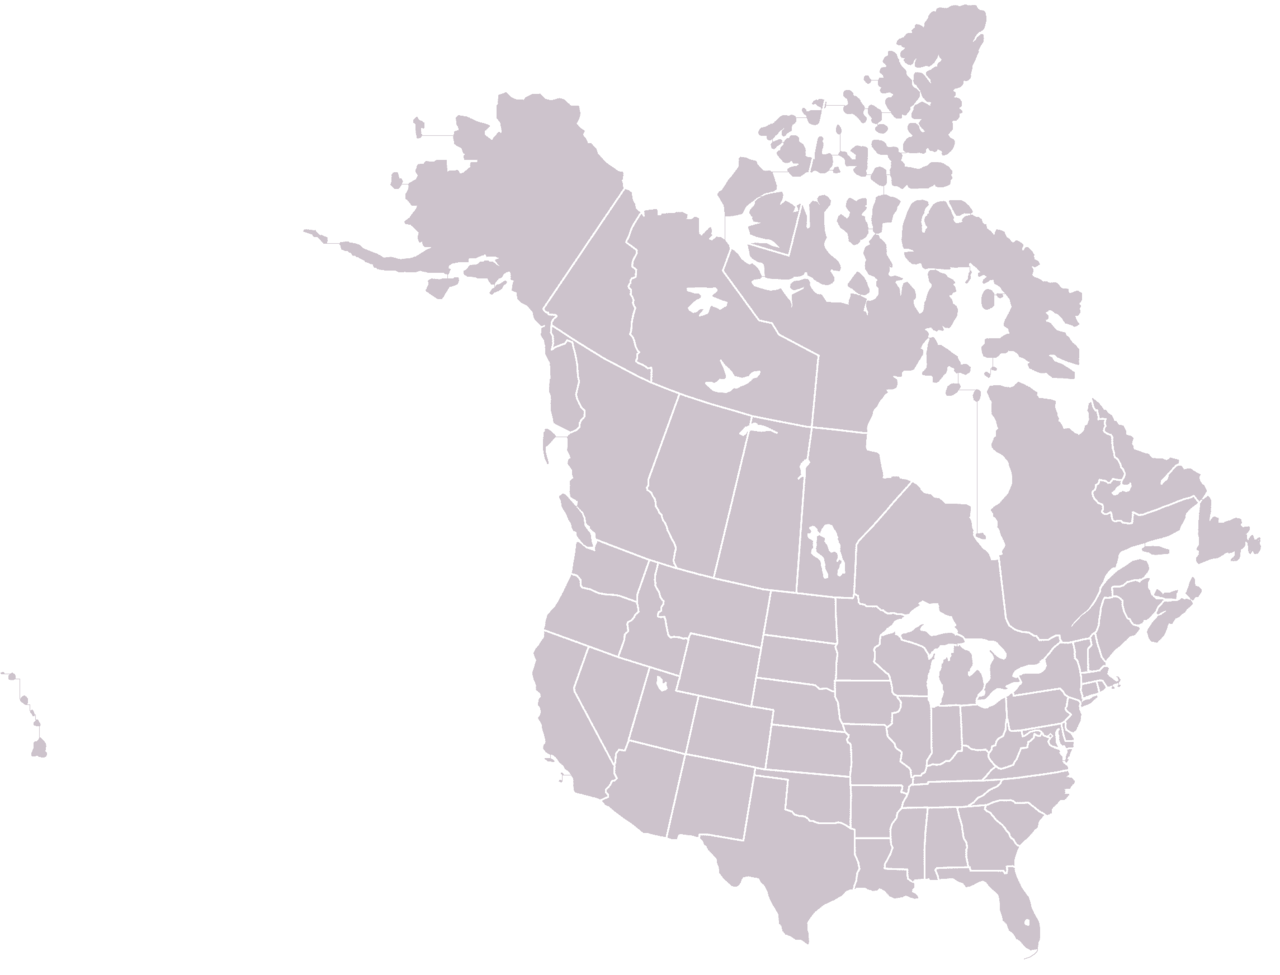 Map Of Canada Silhouette.File Blankmap Usa States Canada Provinces Png Wikimedia Commons